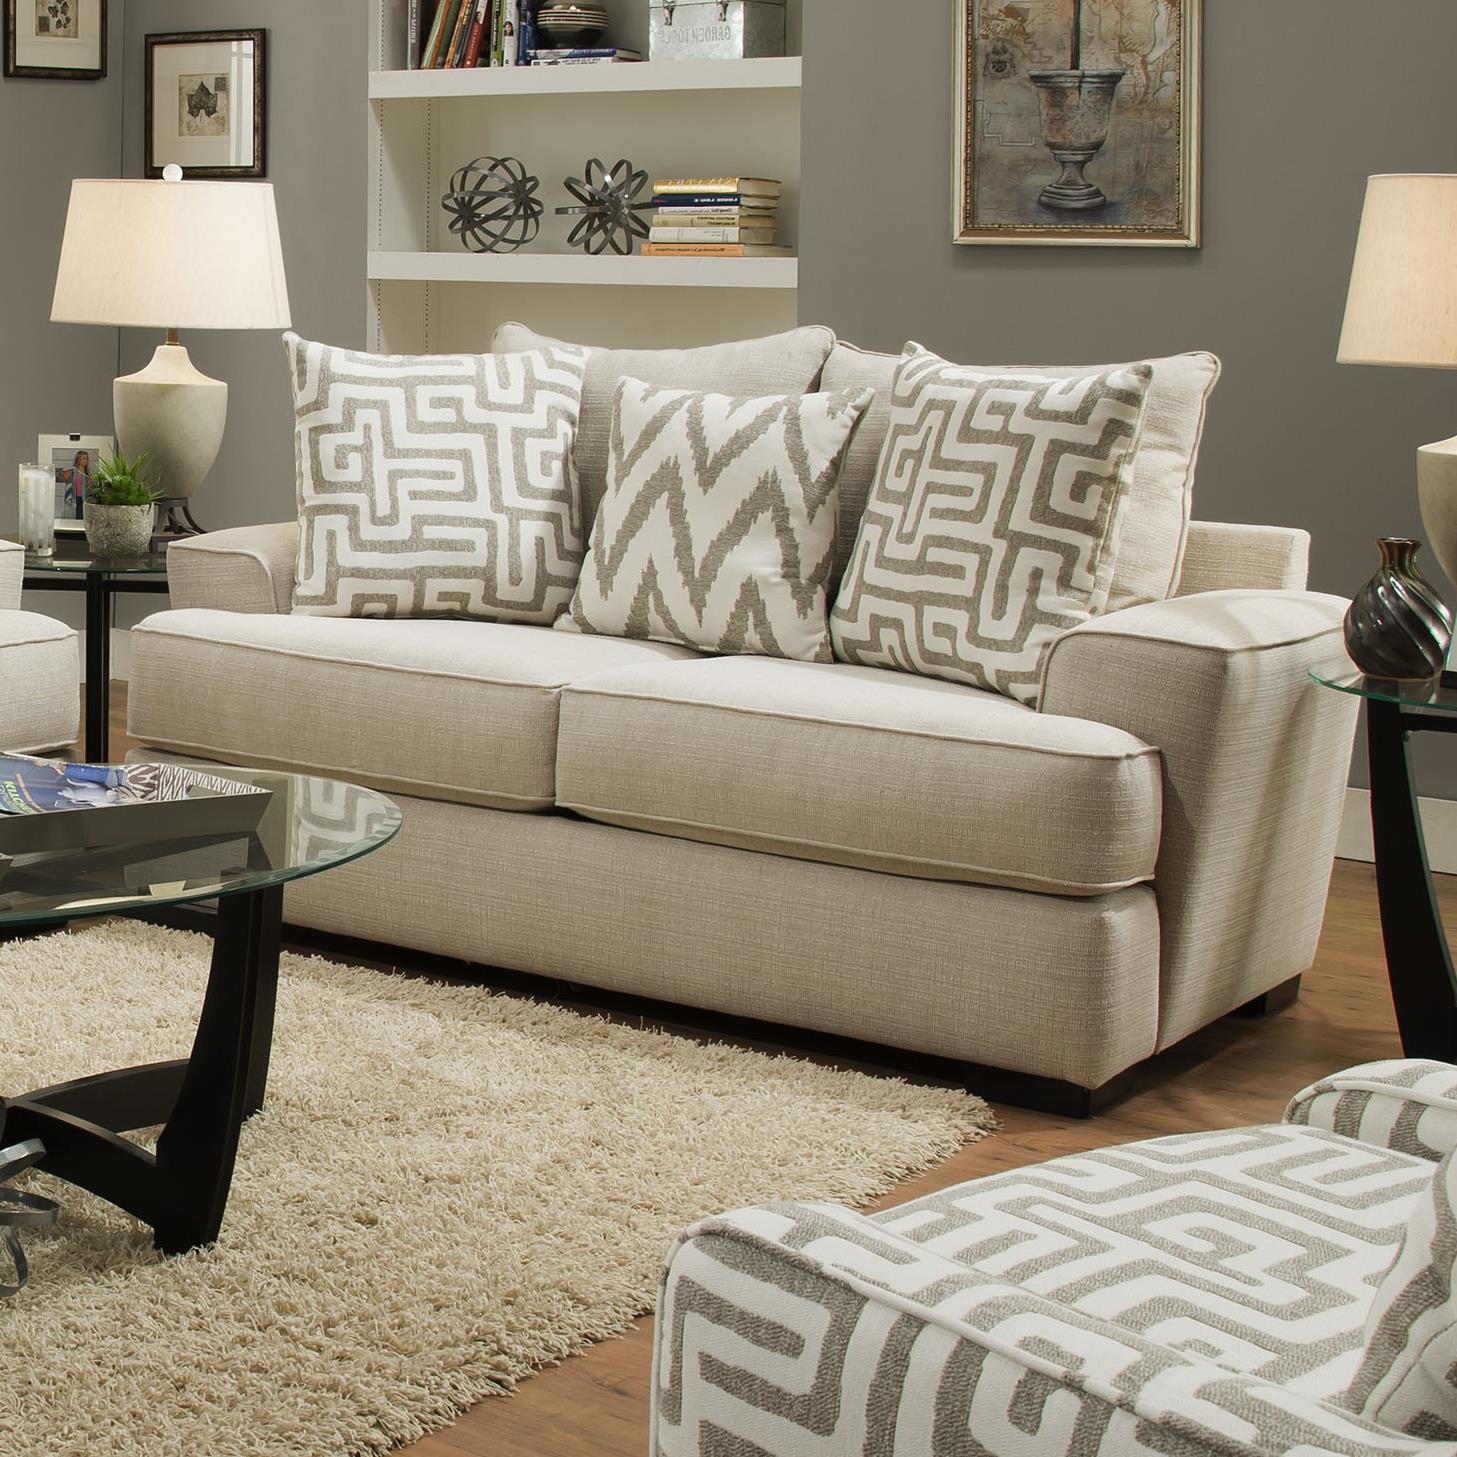 Albany 8686 Loveseat - Item Number: 8686-10-GENS-20612